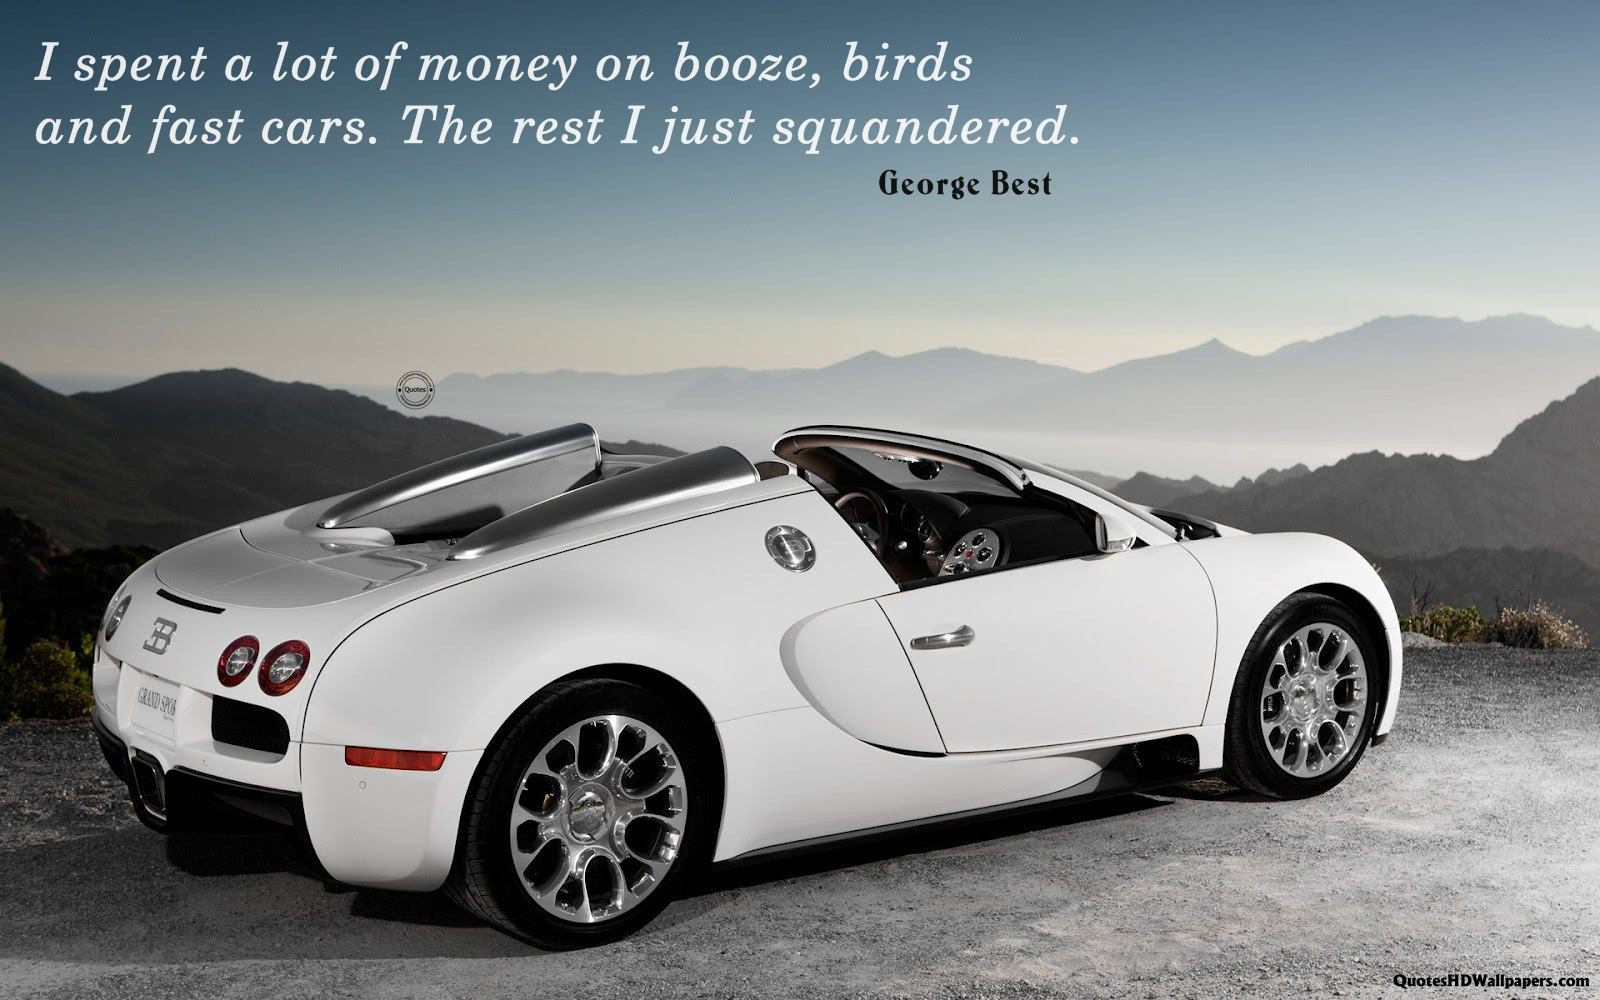 Quotes About Fast Cars Quotes - Cool cars quotes